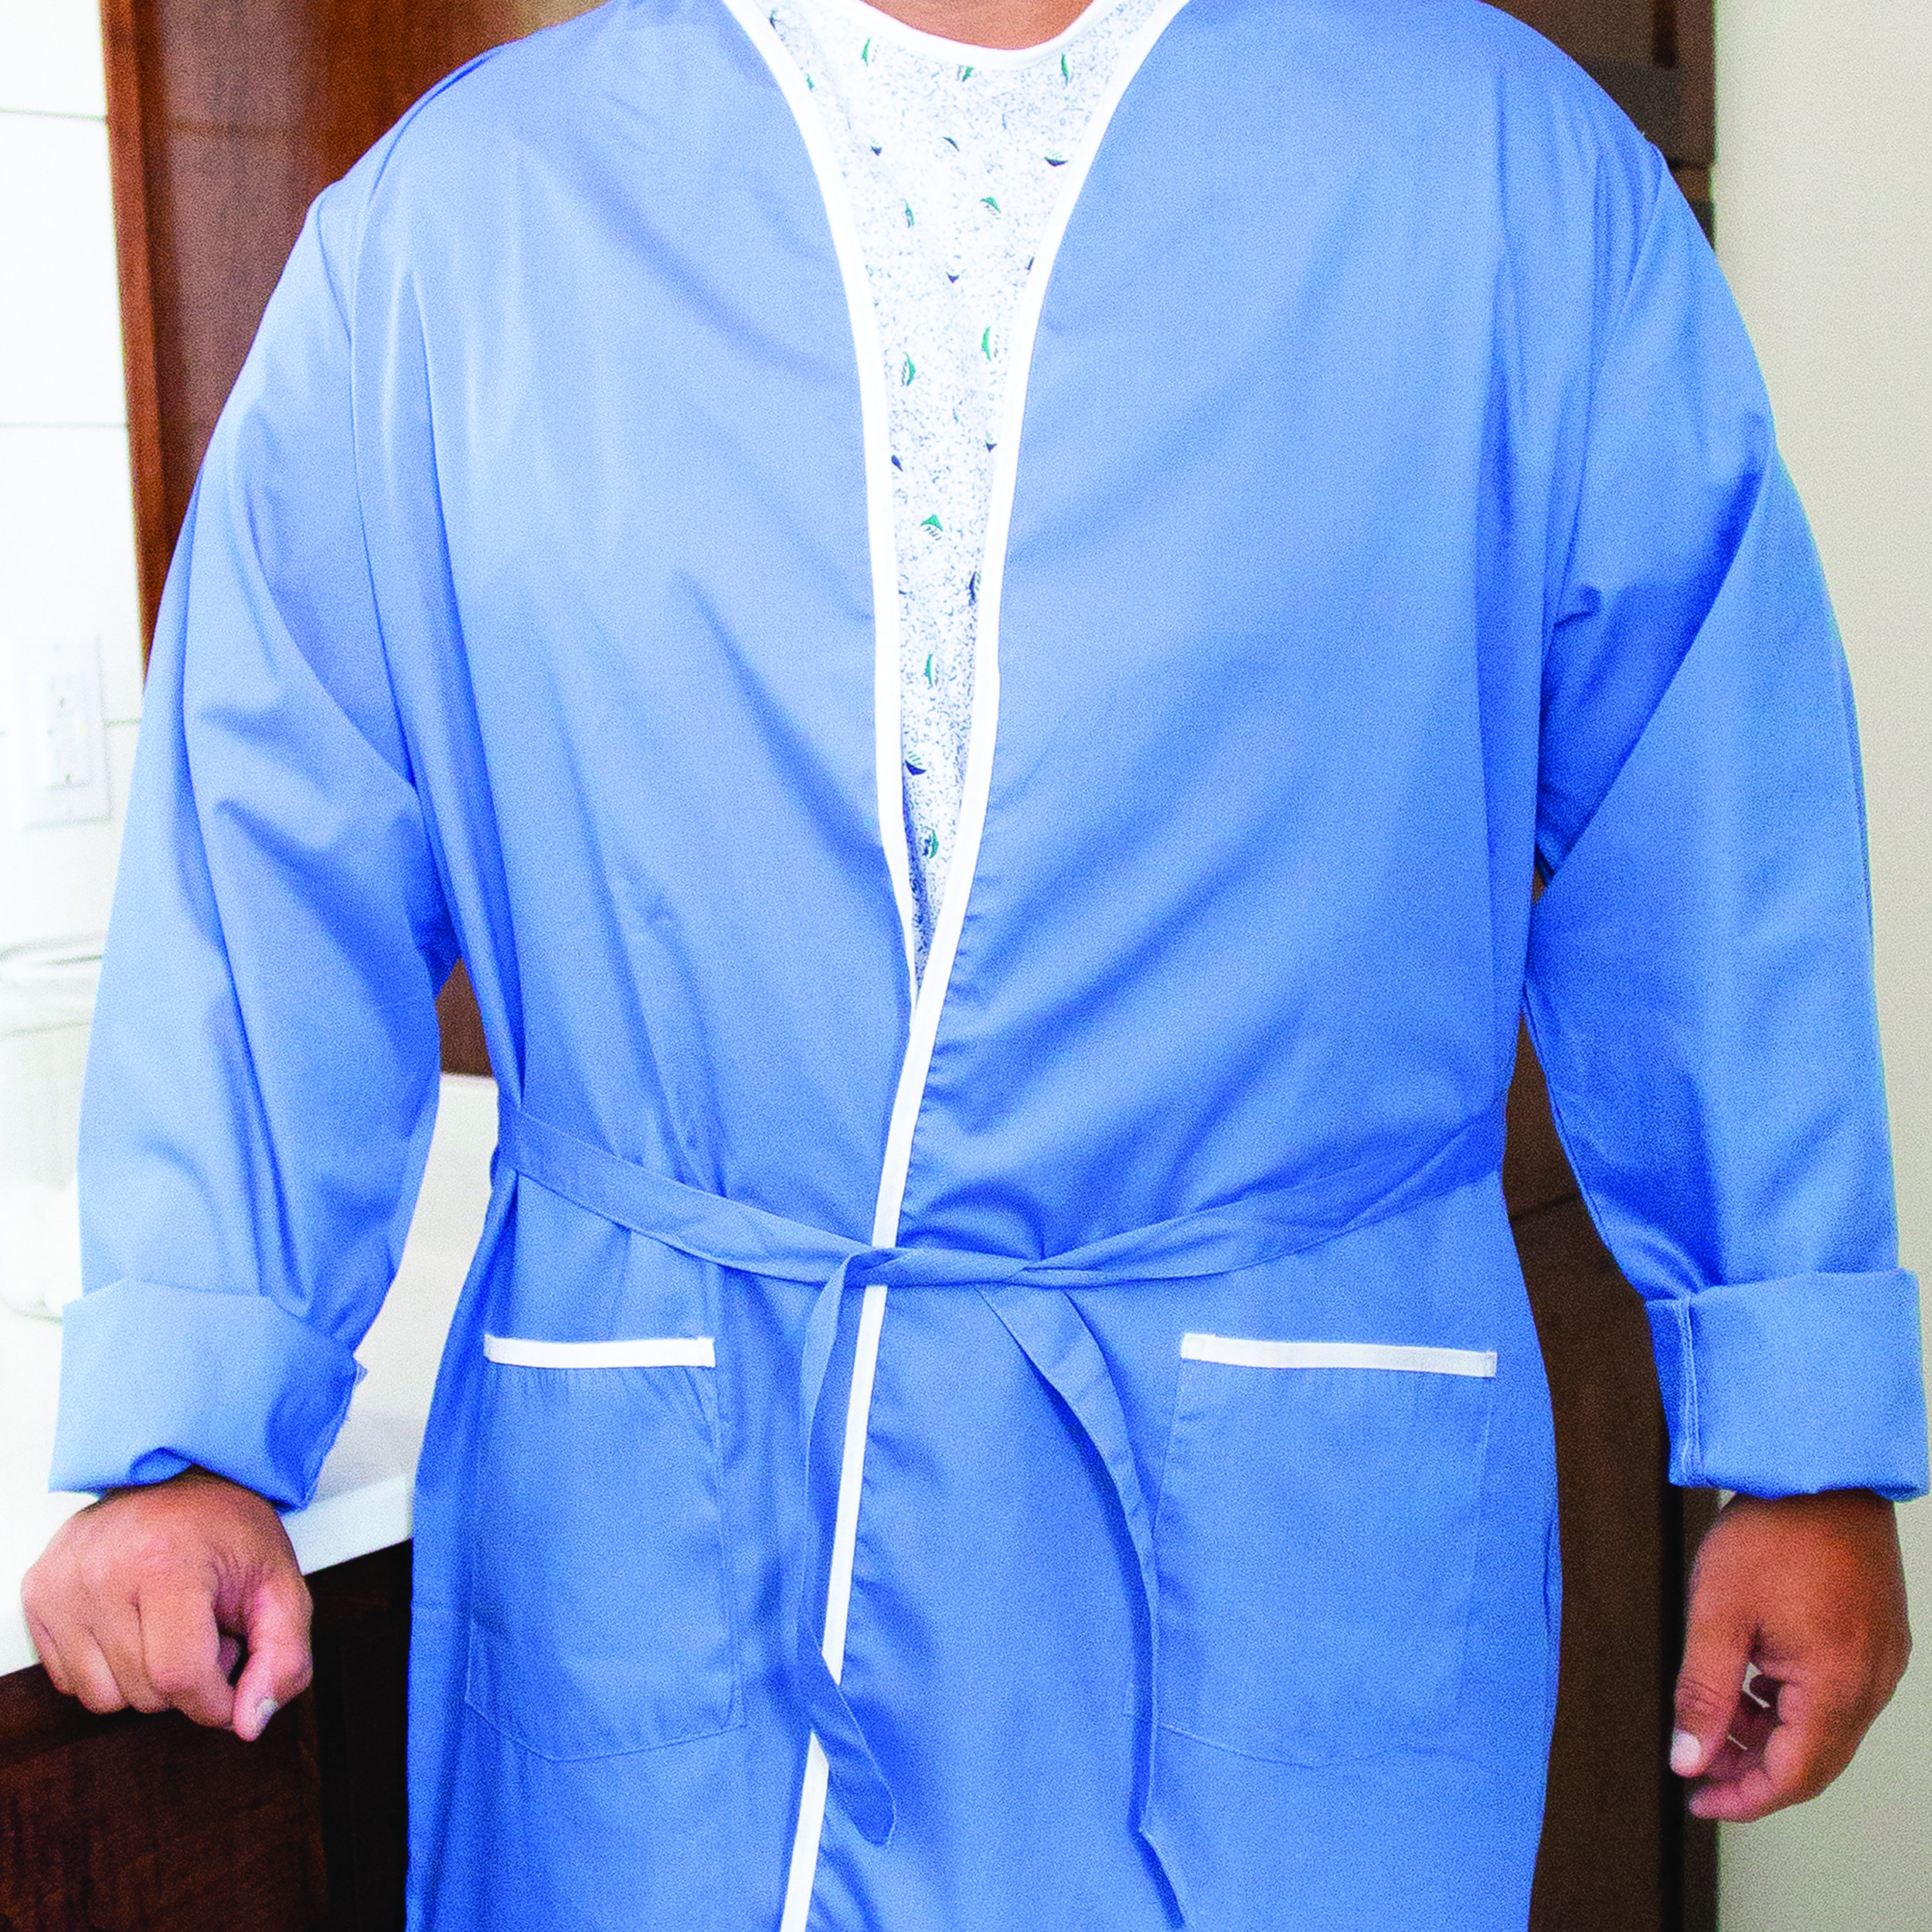 Ceil Blue Robe - 55/45 CTN/POLY CEIL BLUE FABRIC WITH WHITE TRIM